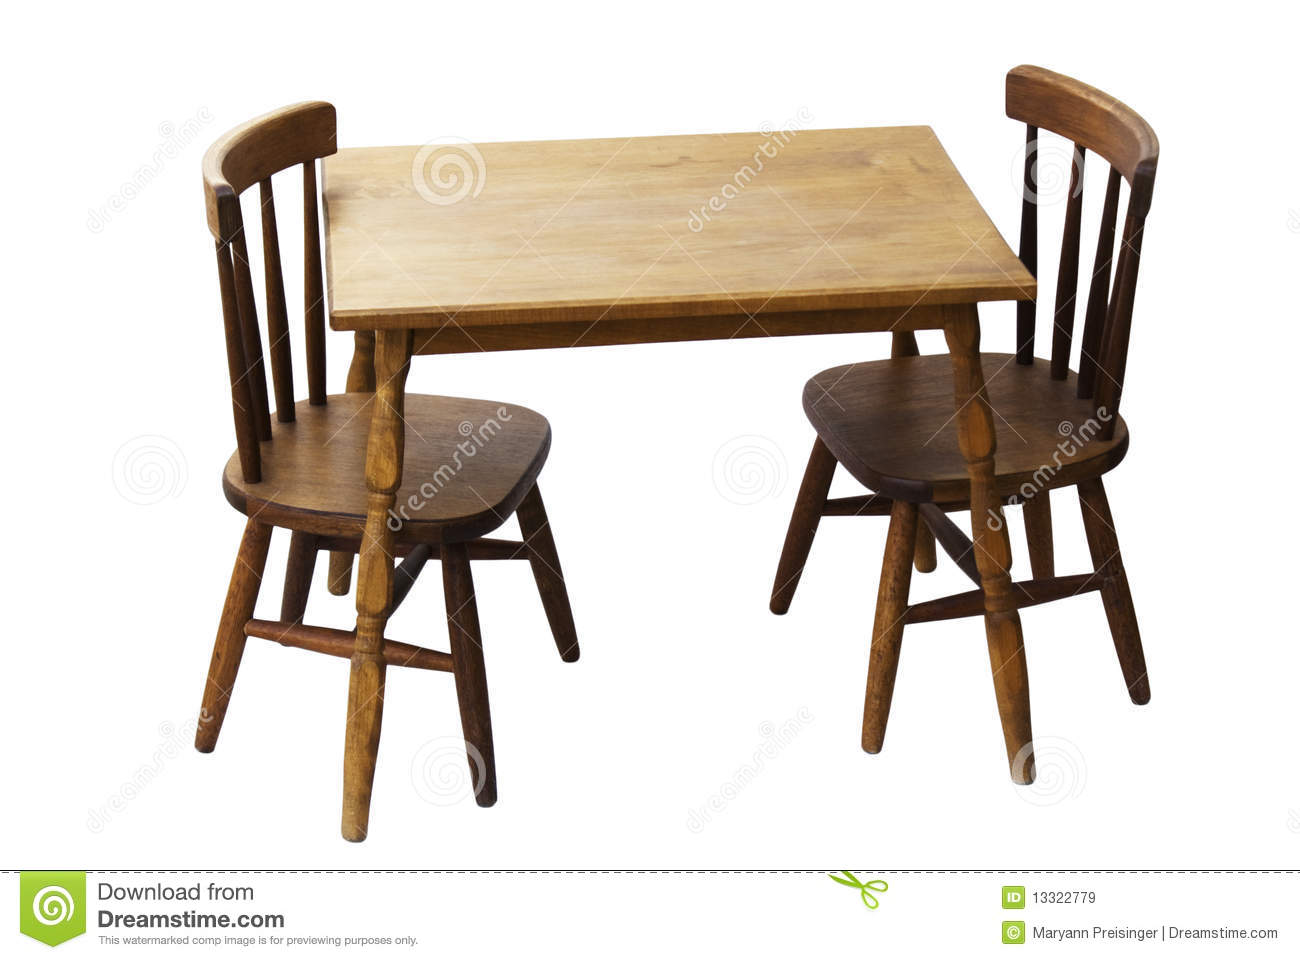 Kids Wood Table And Chairs Children S Child Wood Table And Chairs Isolated Stock Image